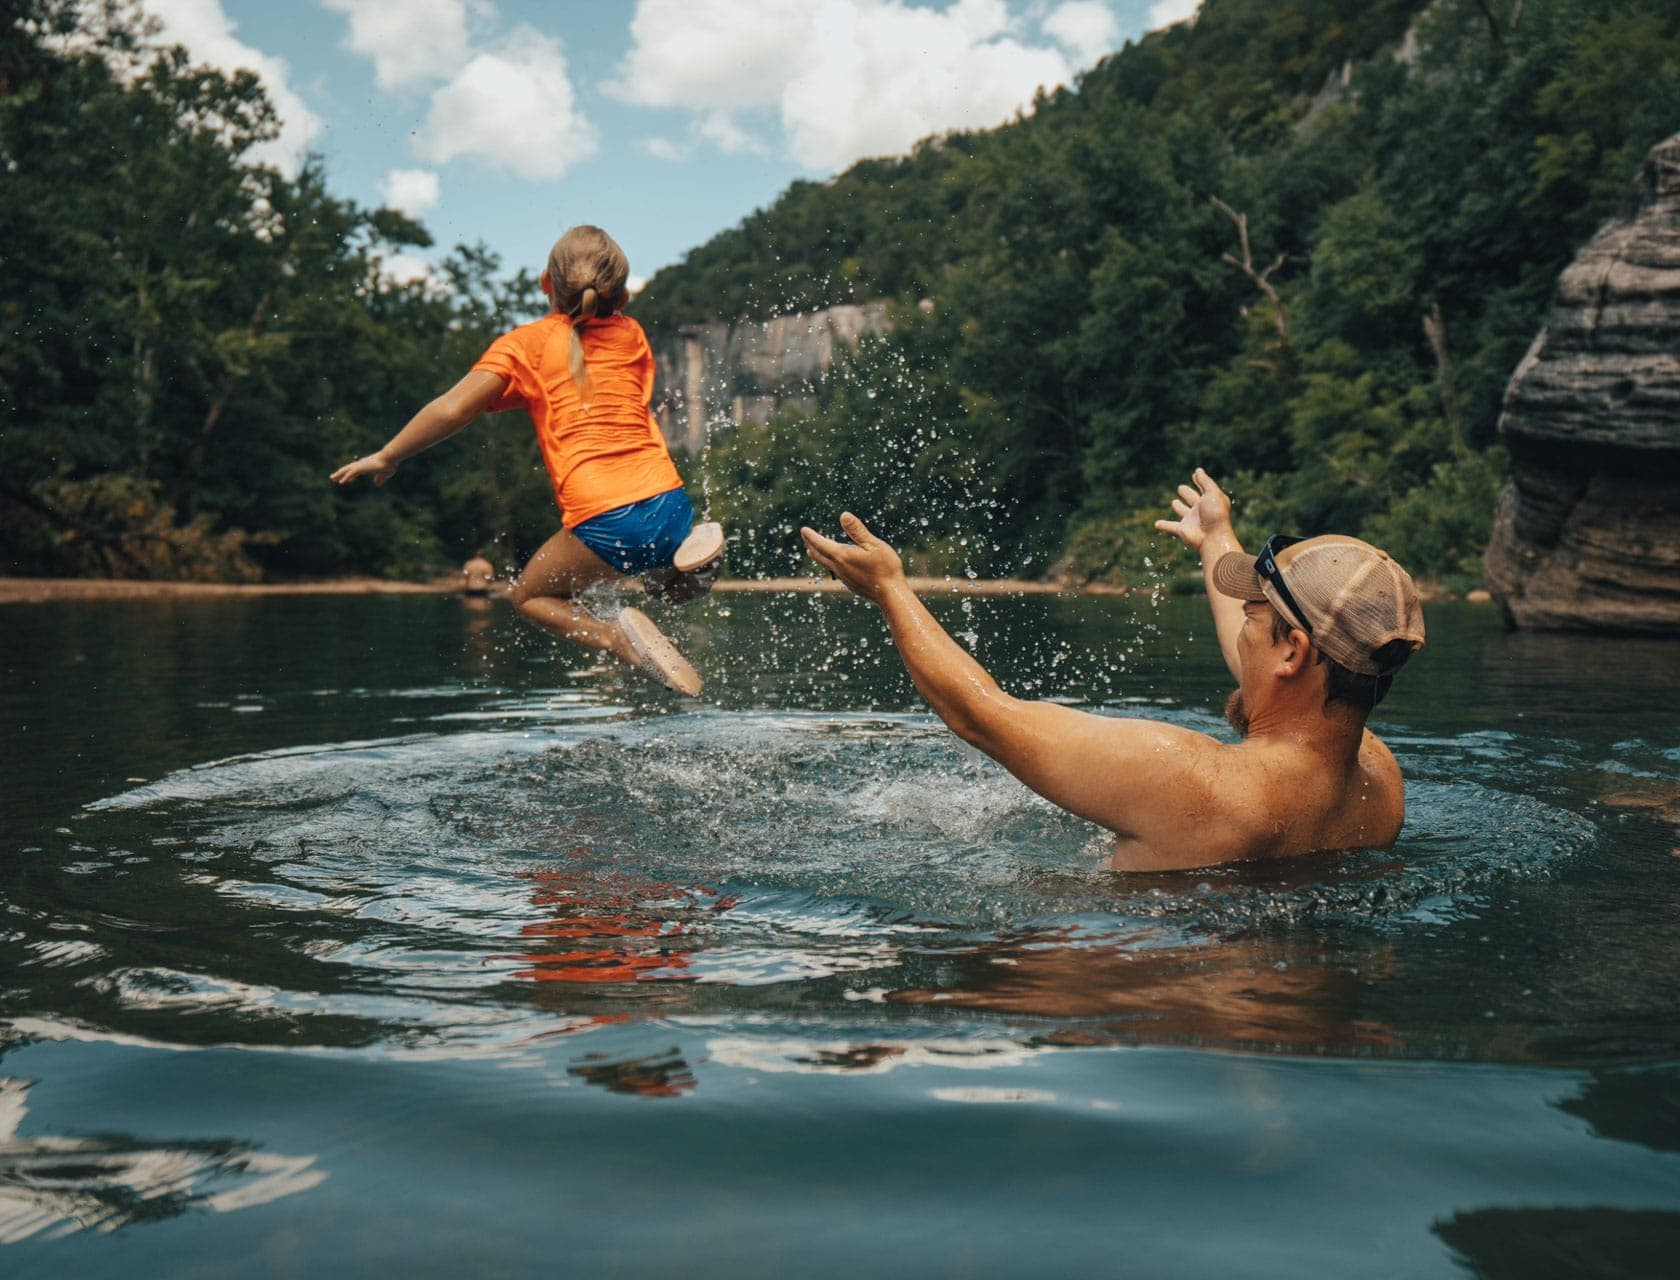 Father launching child into water at a swimming hole